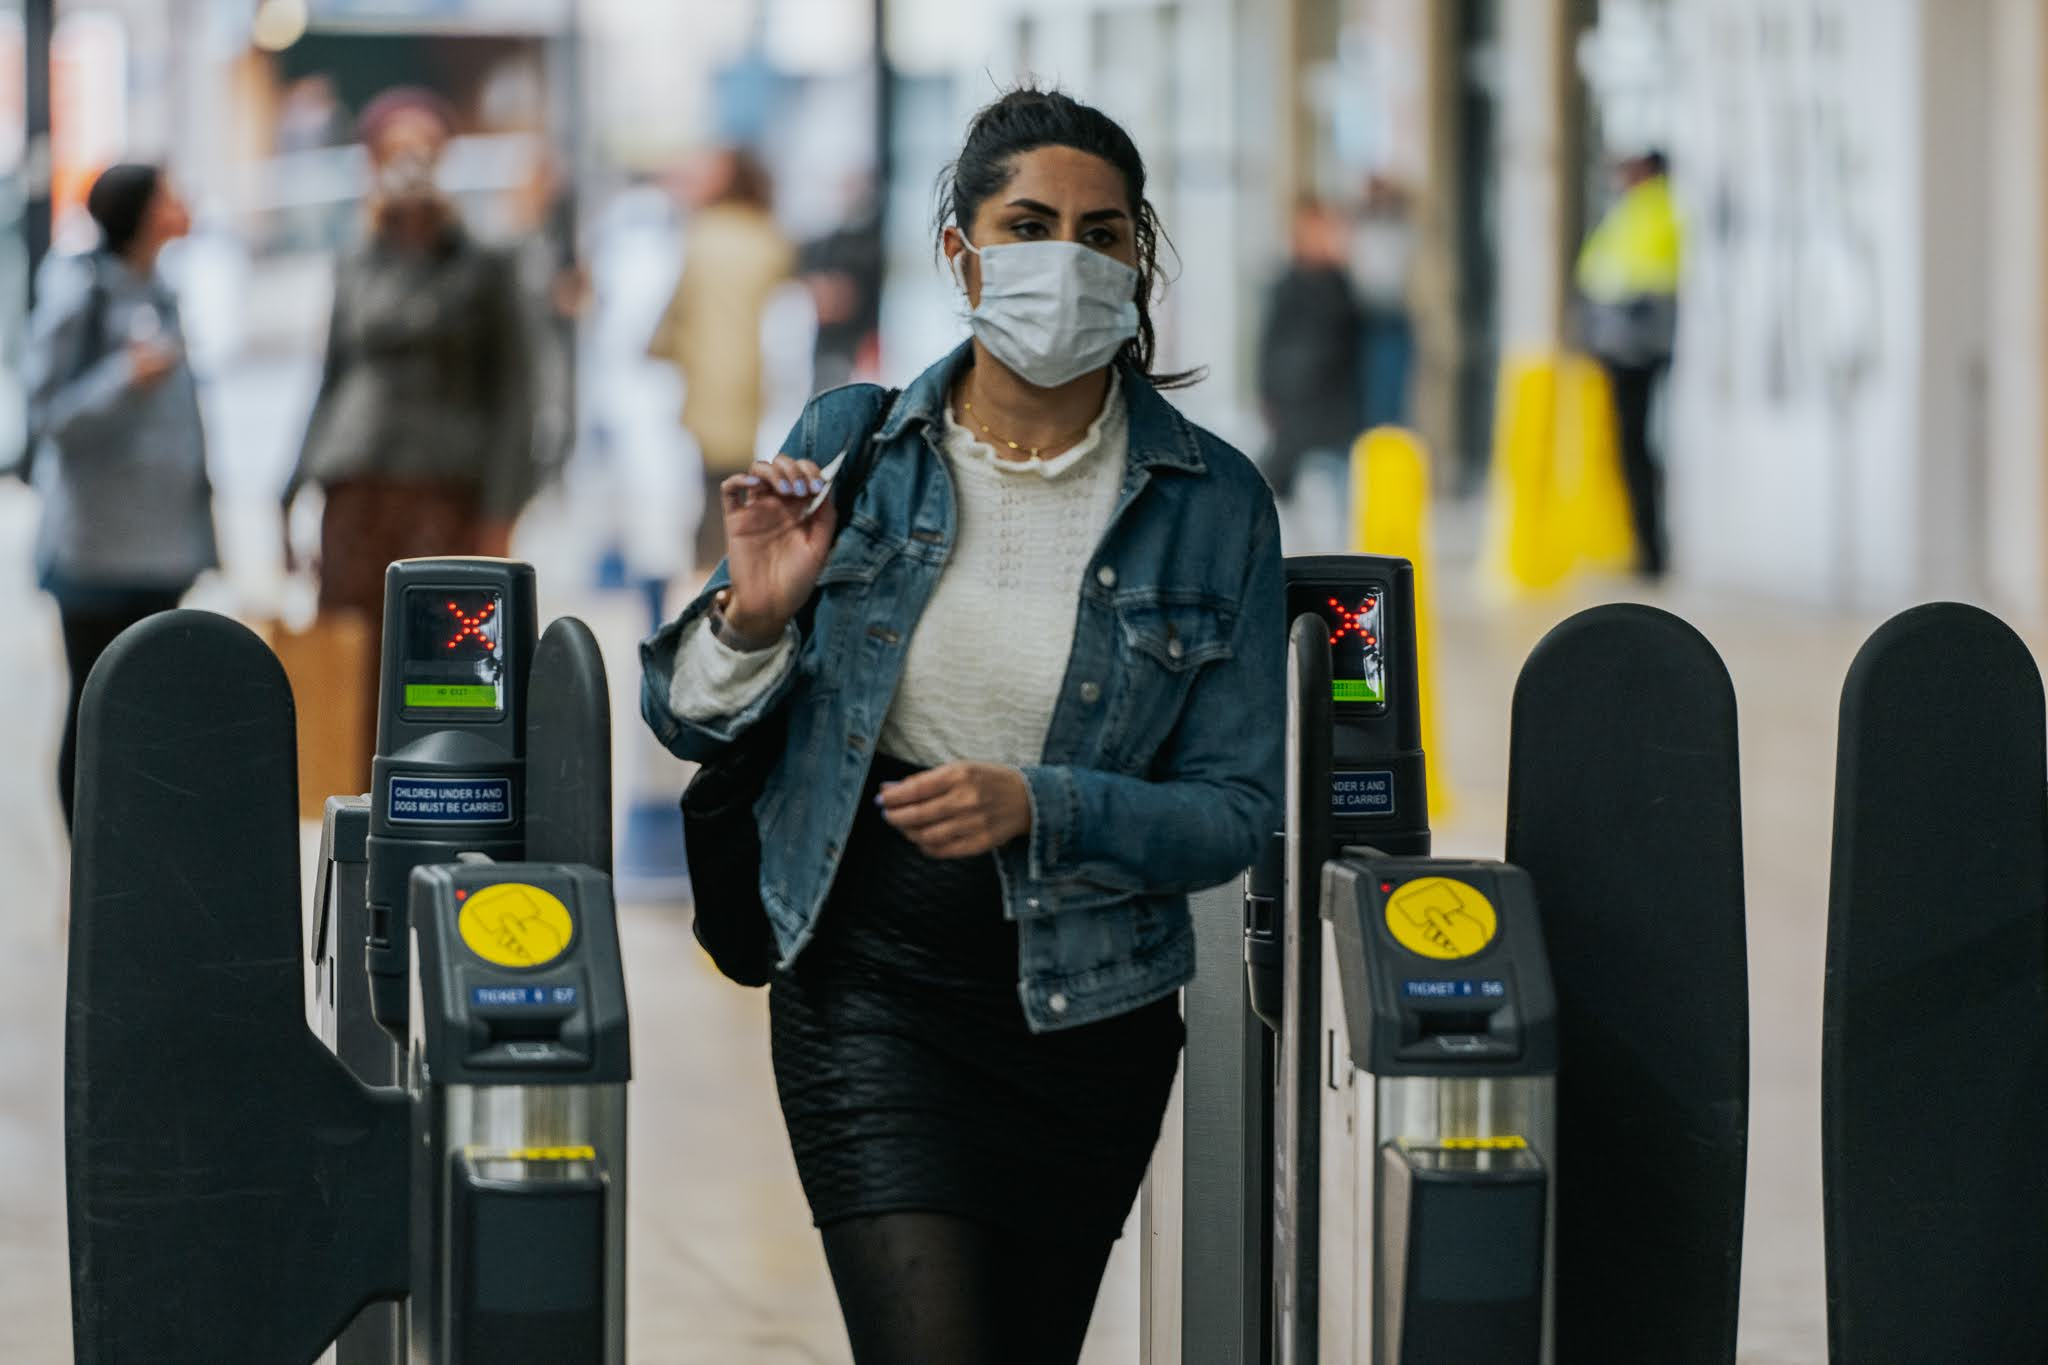 Woman in facemask exiting train station through ticket gate